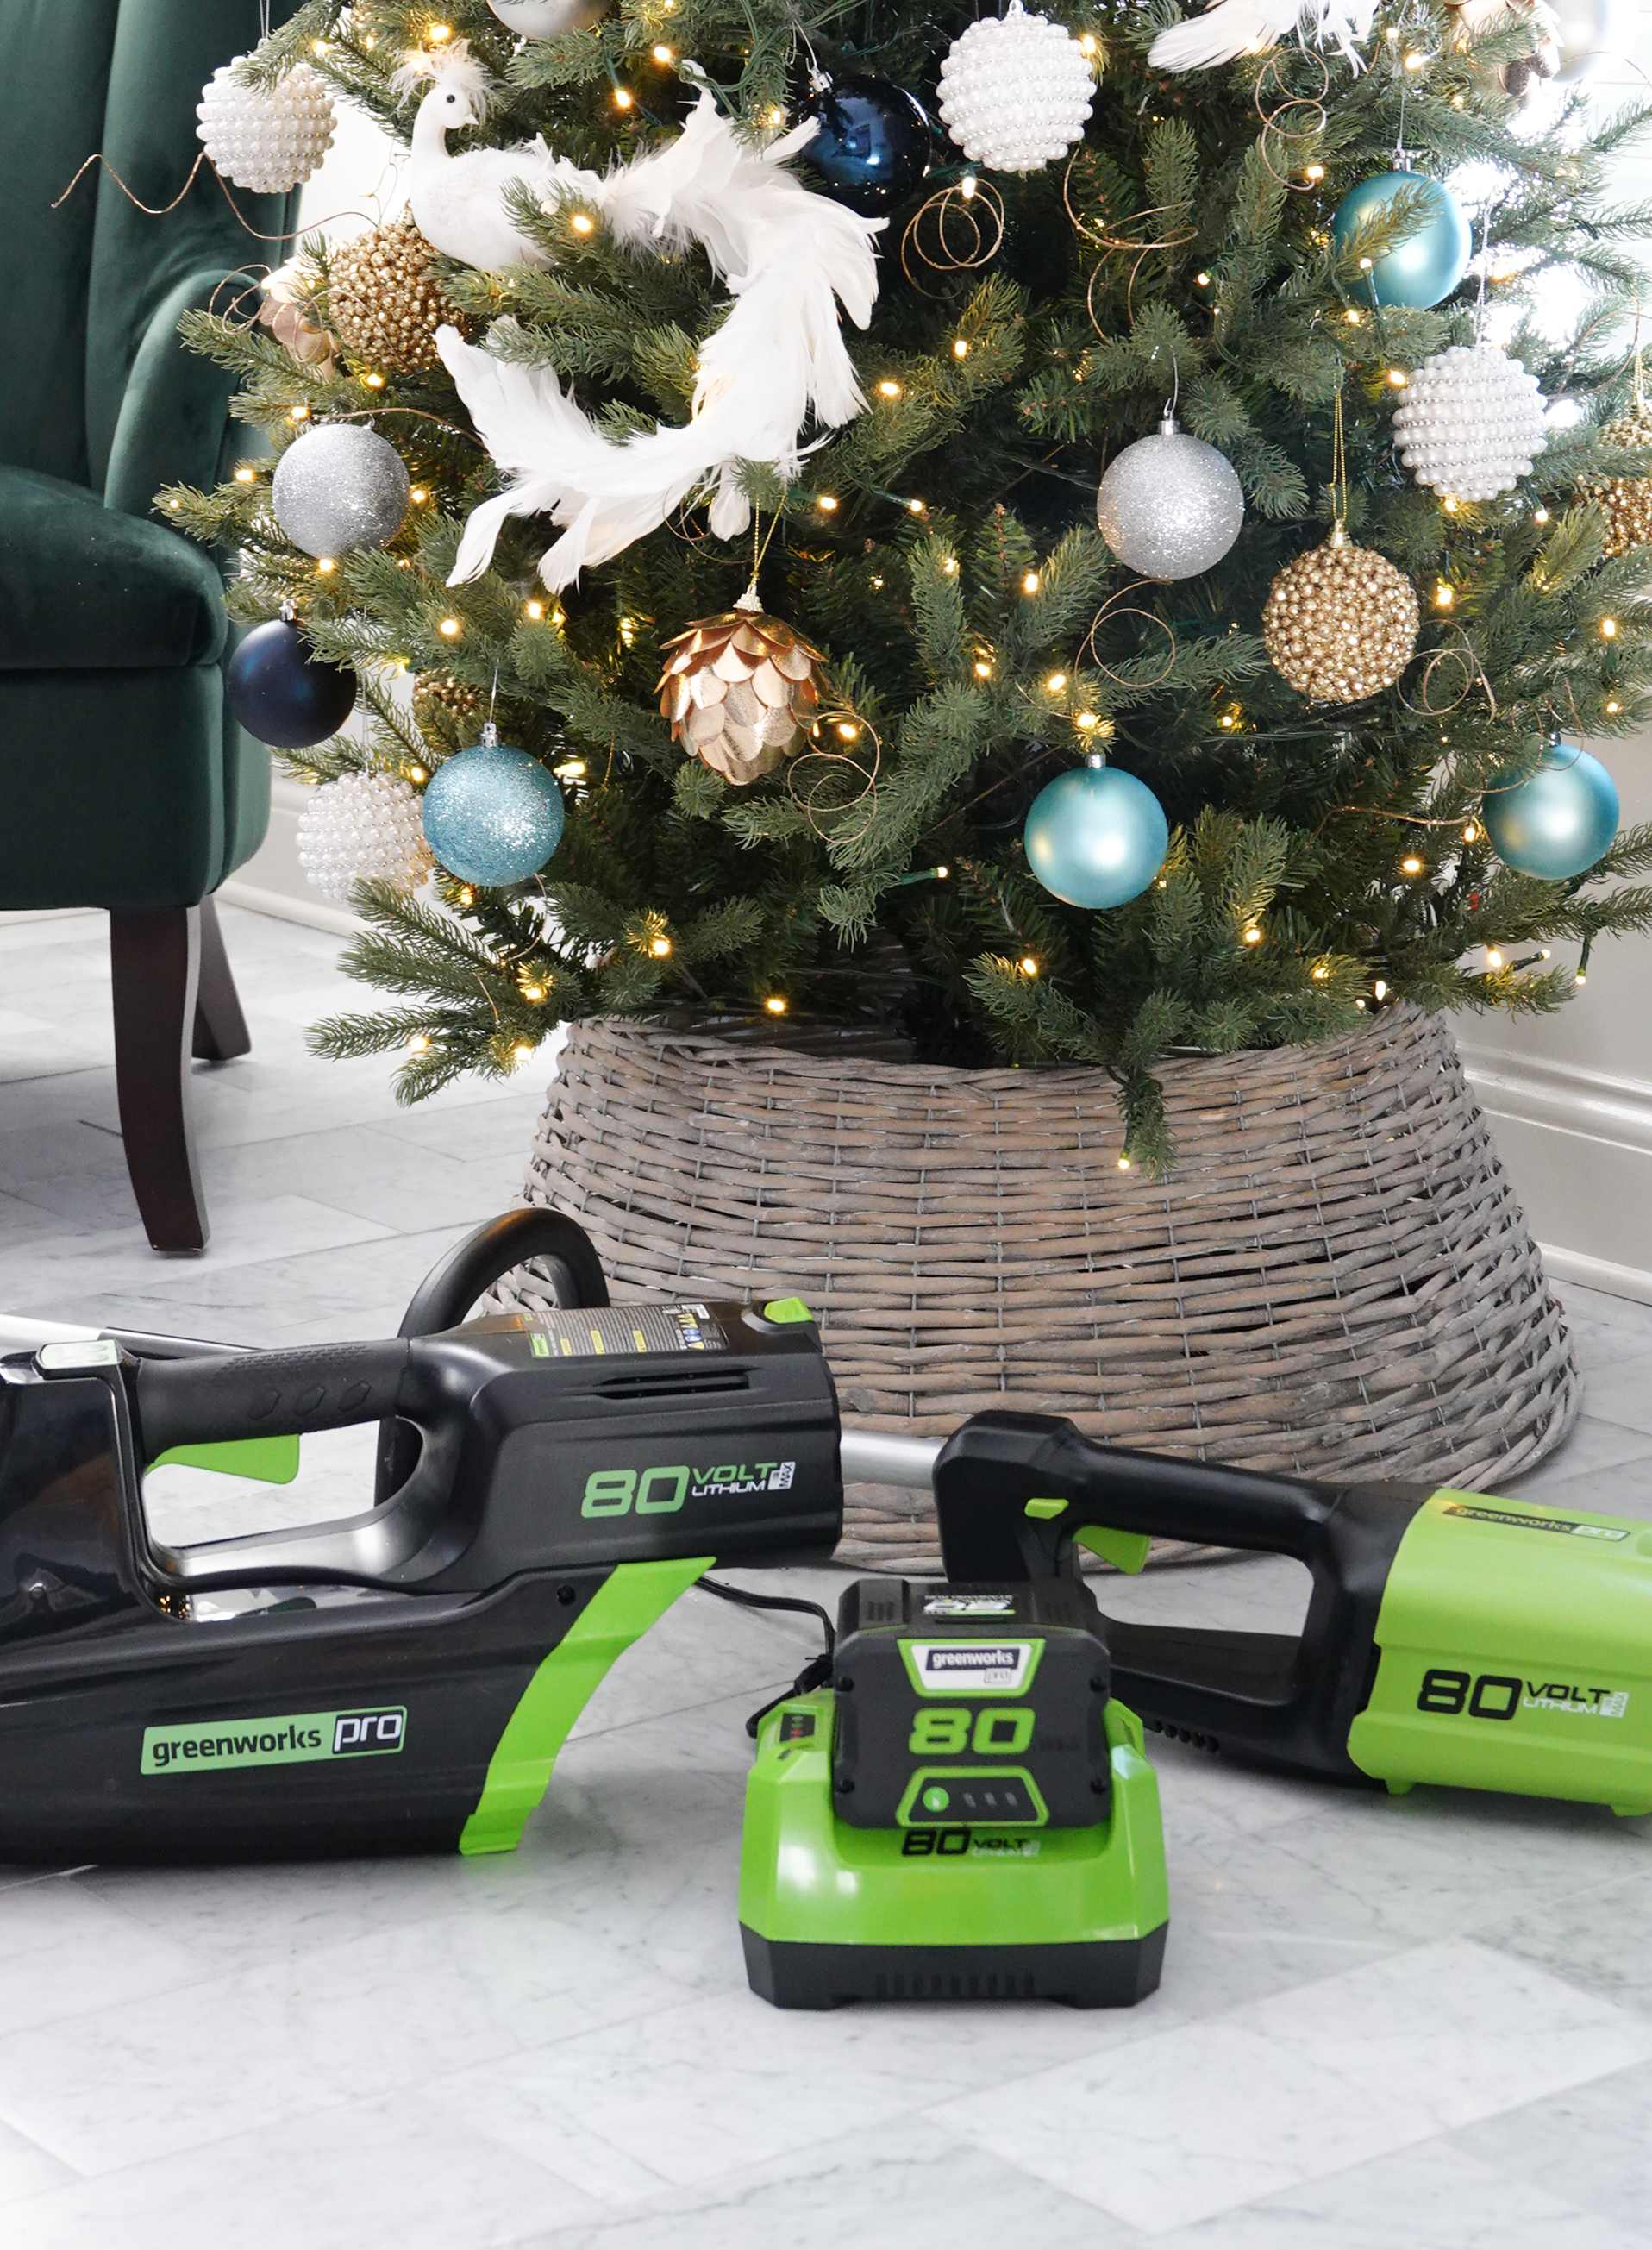 Best Tool Gift Ideas for Christmas